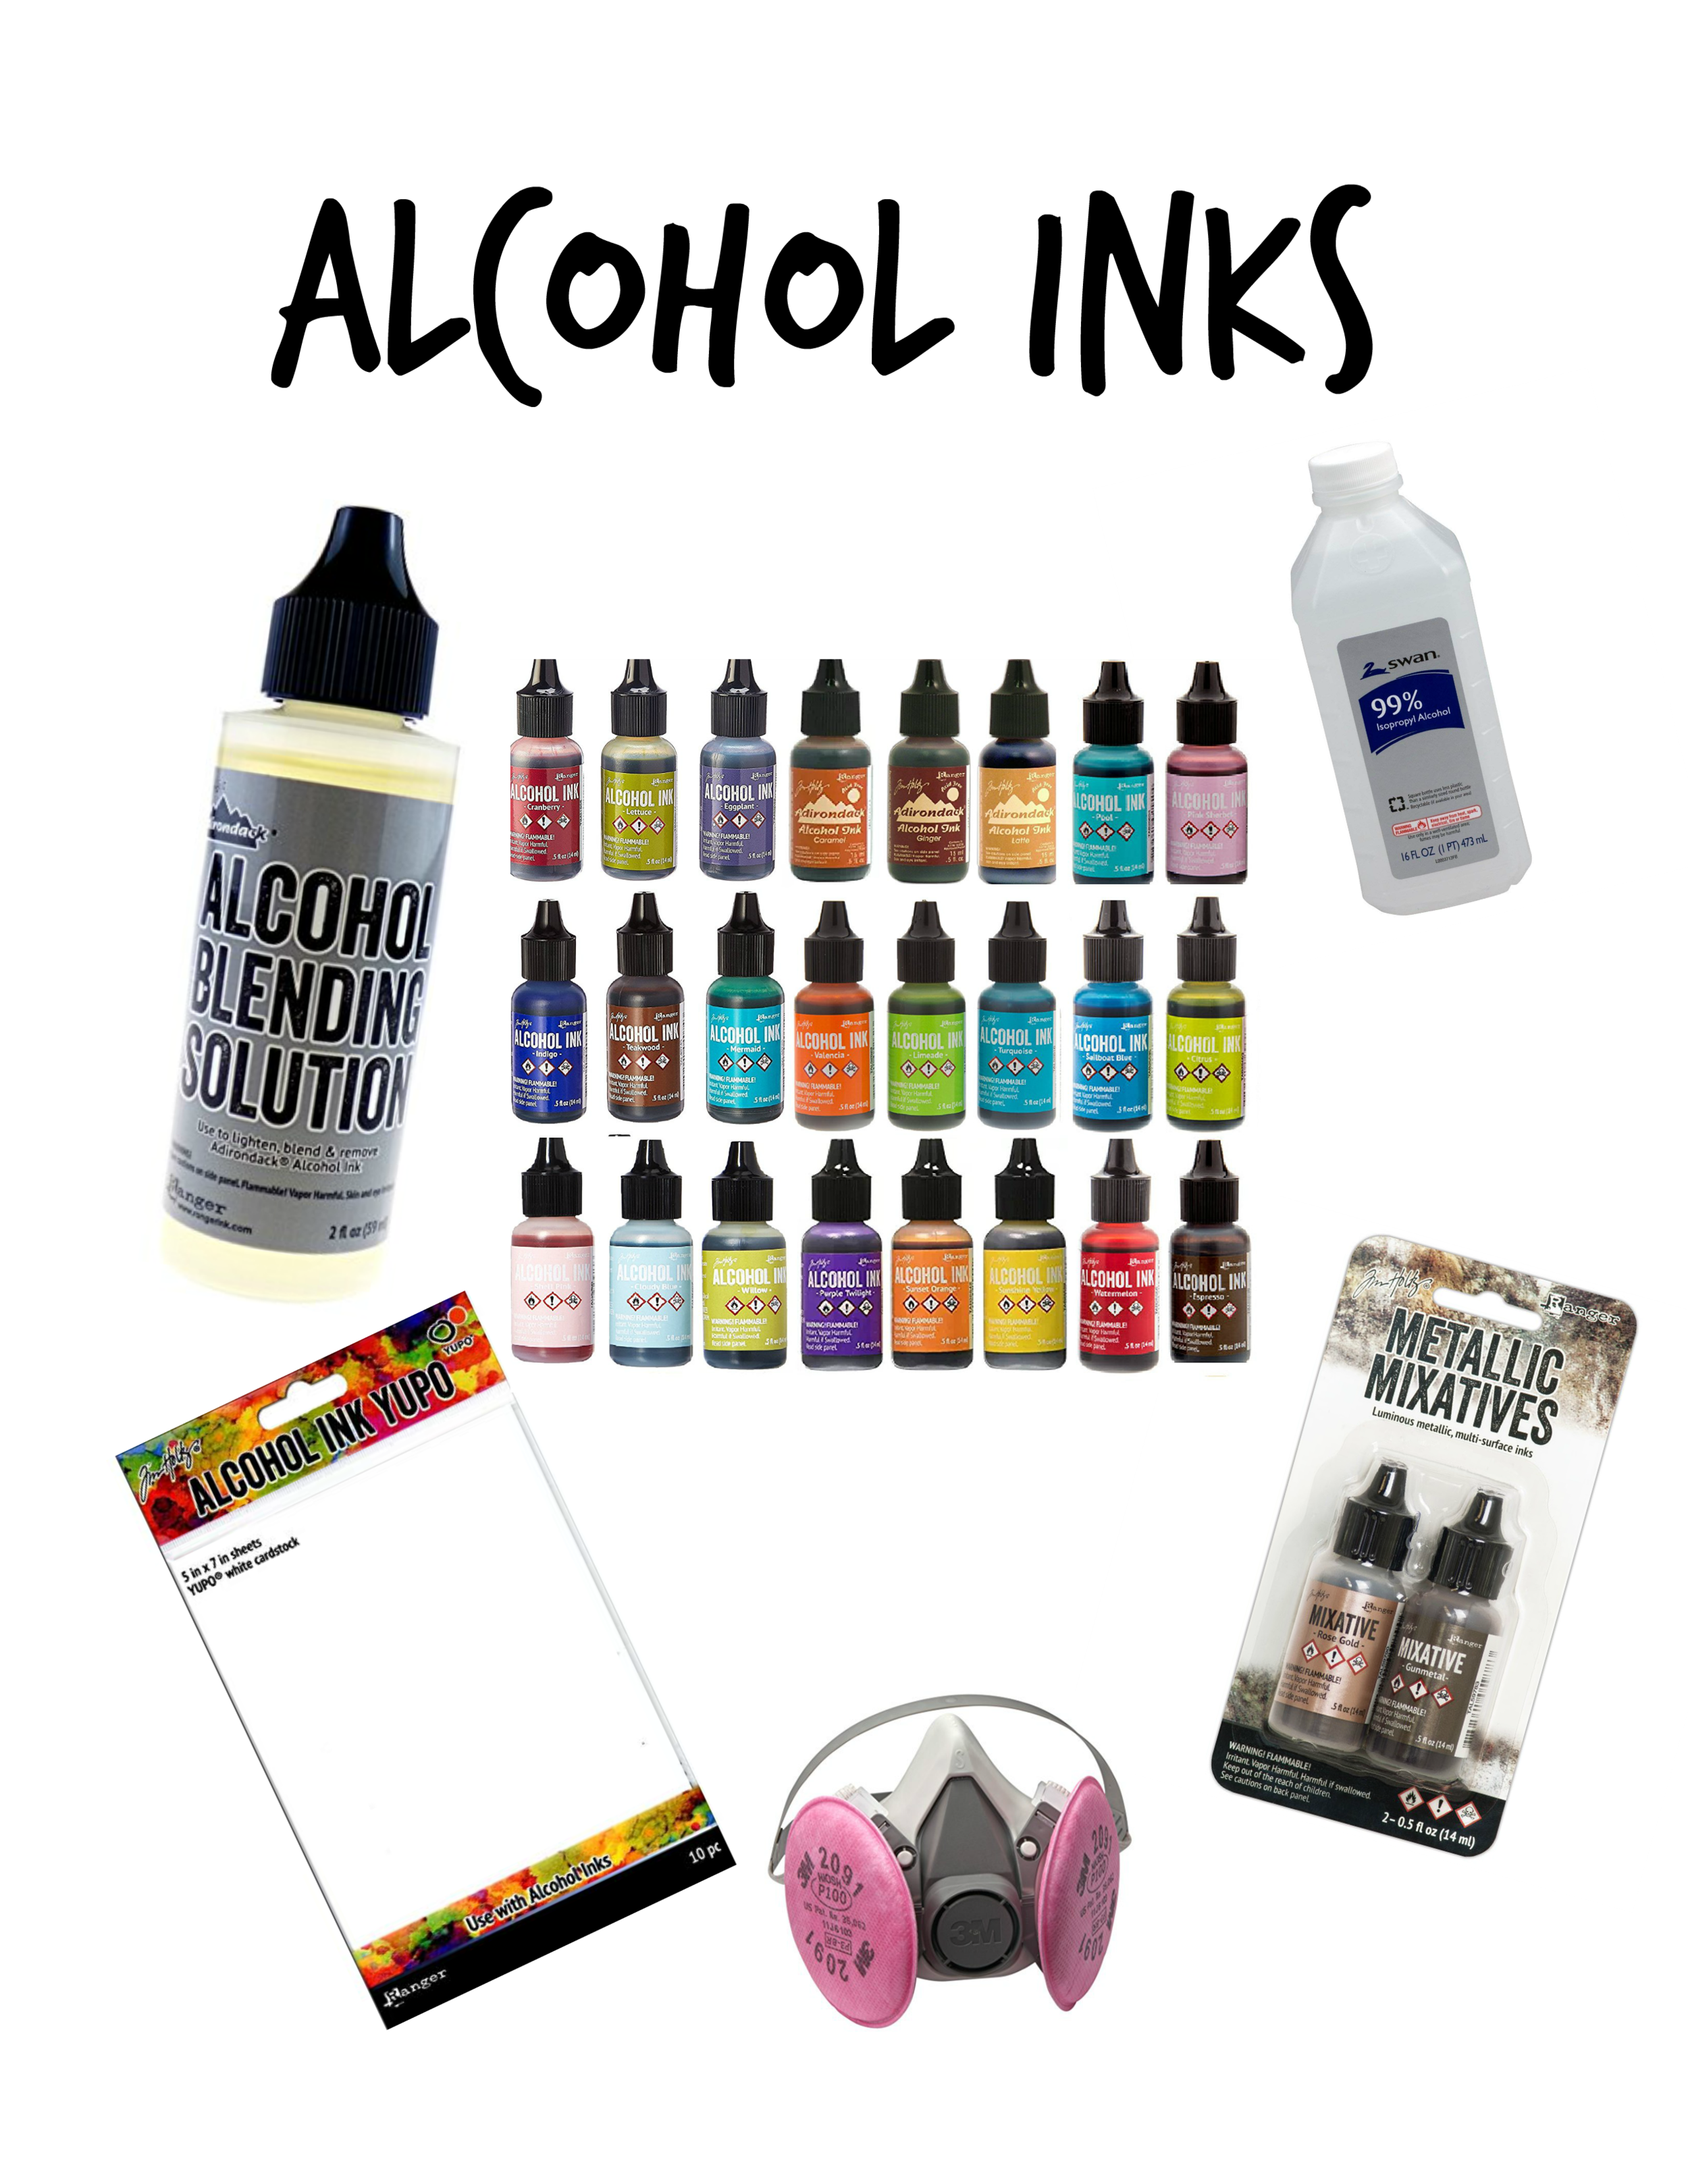 "- I have had best luck with Tim Holtz alcohol inks, but other artists have recommended Copic and Pinata brands. My favorite color to use is ""lettuce."" Definitely purchase some blending solution, but you can also use rubbing alcohol for a different look. I have added the heat gun that I use, but you can also use a hair dryer (with caution as these materials can be flammable!) You must work on a non-porous surface, so you can use Yupo paper, ceramic, or coat a canvas in latex paint, otherwise the alcohol ink eats right through! Wear a respirator and work in a well-ventilated area, these get smelly! The mixatives have been more of a challenge for me, but the pearl, rose gold, and gold can add such beautiful details, and are worth a try, too!"